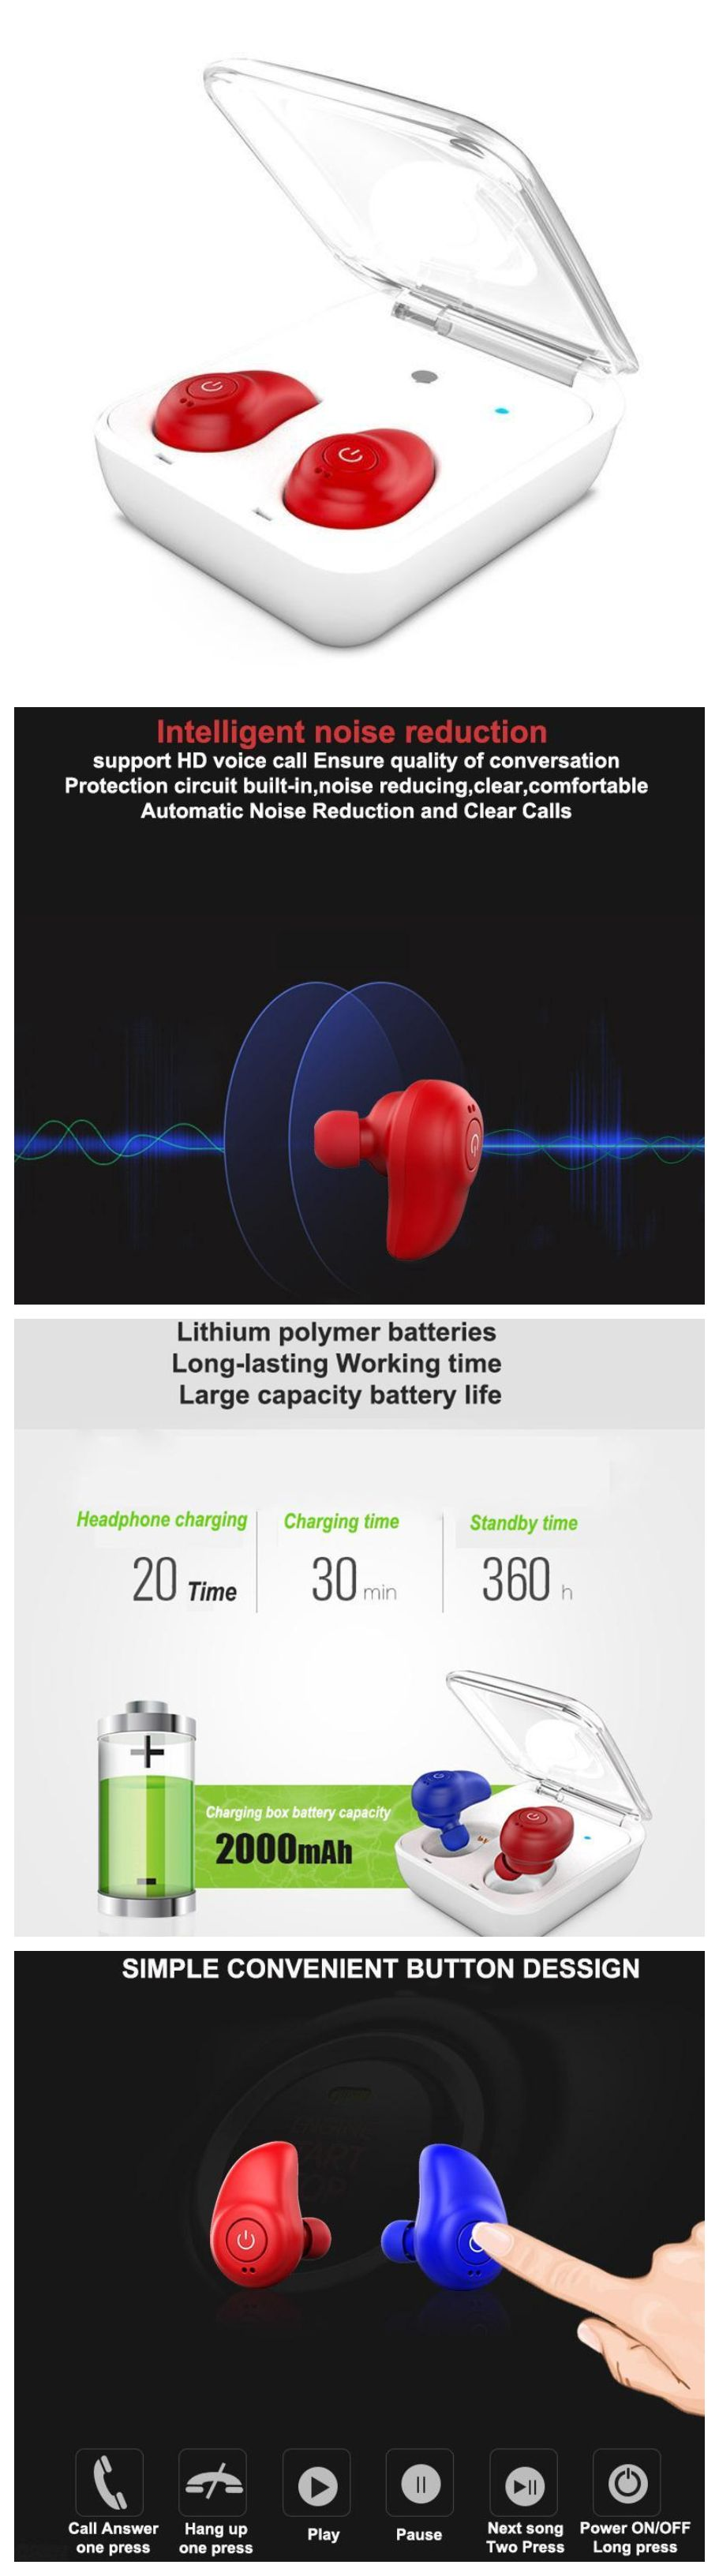 New Wireless Sports Bluetooth Earphones Headphones Headset Circuit Diagram Headphone Sport With Microphone And Charging Fits Into Workout